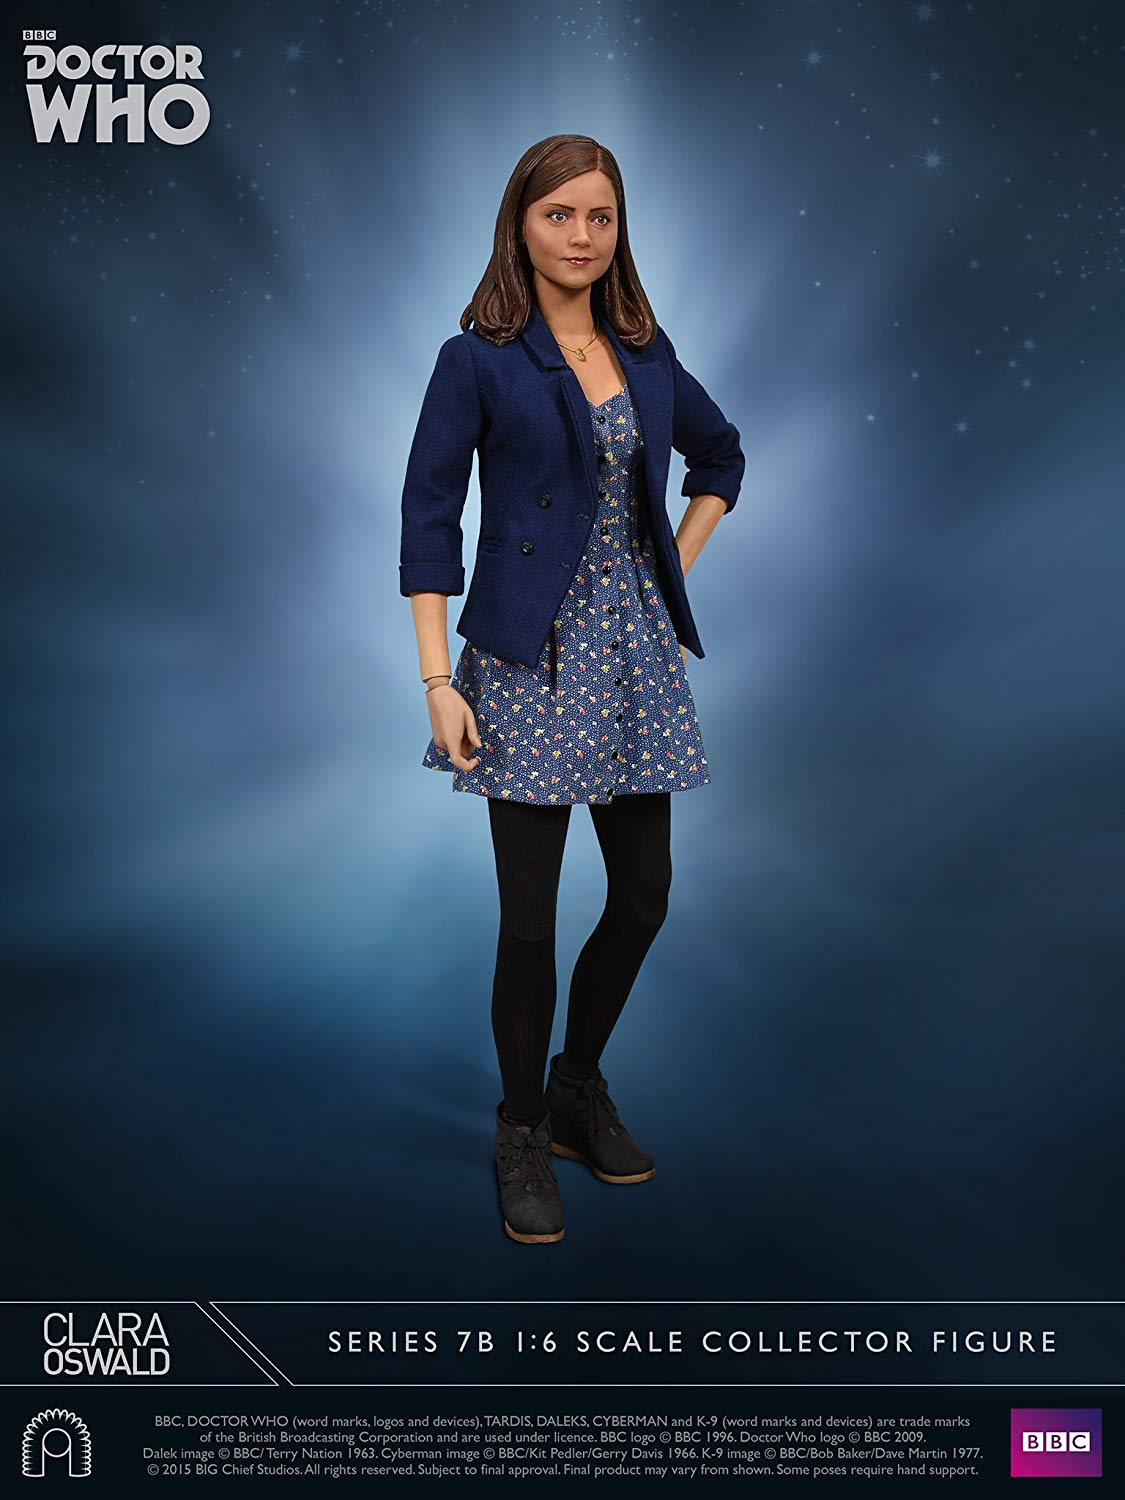 gree  ef Studios Doctor Who Collector cifra Series azione cifra 1 6 Clara Oswald Series 7B 30 c